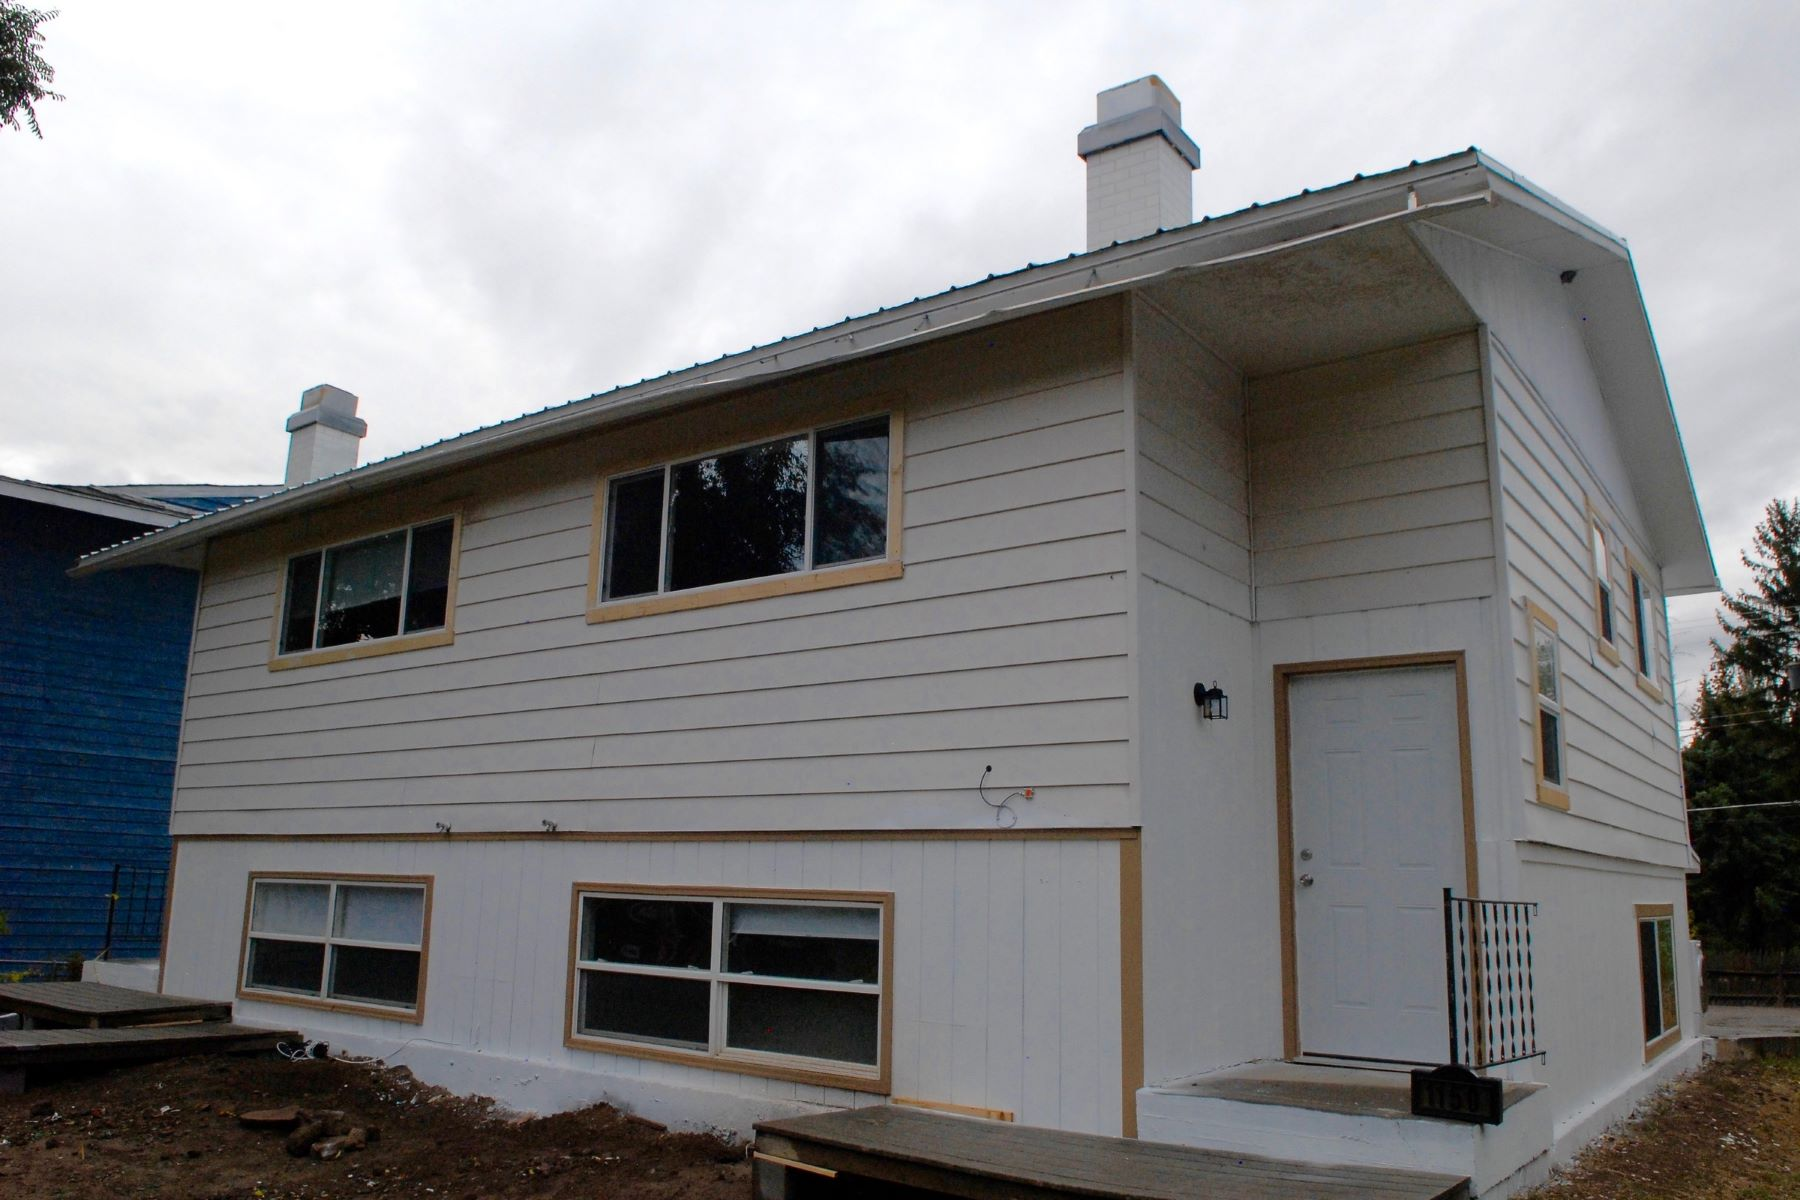 Duplex for Sale at Freshly Remodeled Duplex in Meeker 1140 Cleveland Street Meeker, Colorado 81641 United States